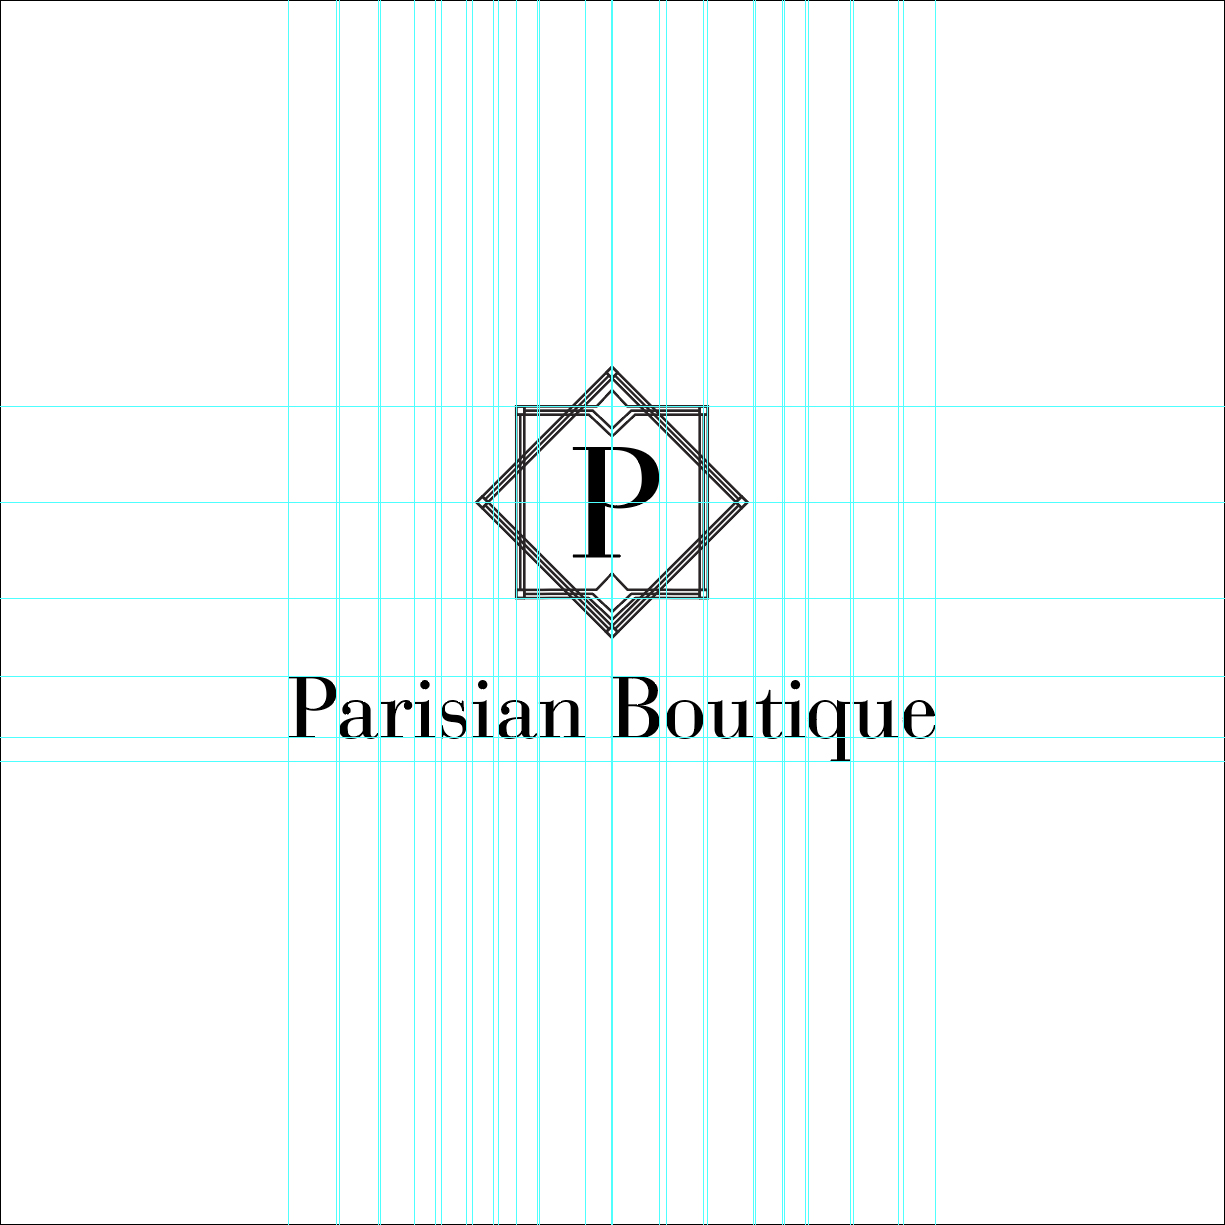 Parisian-Boutique-Bang-Nguyen1